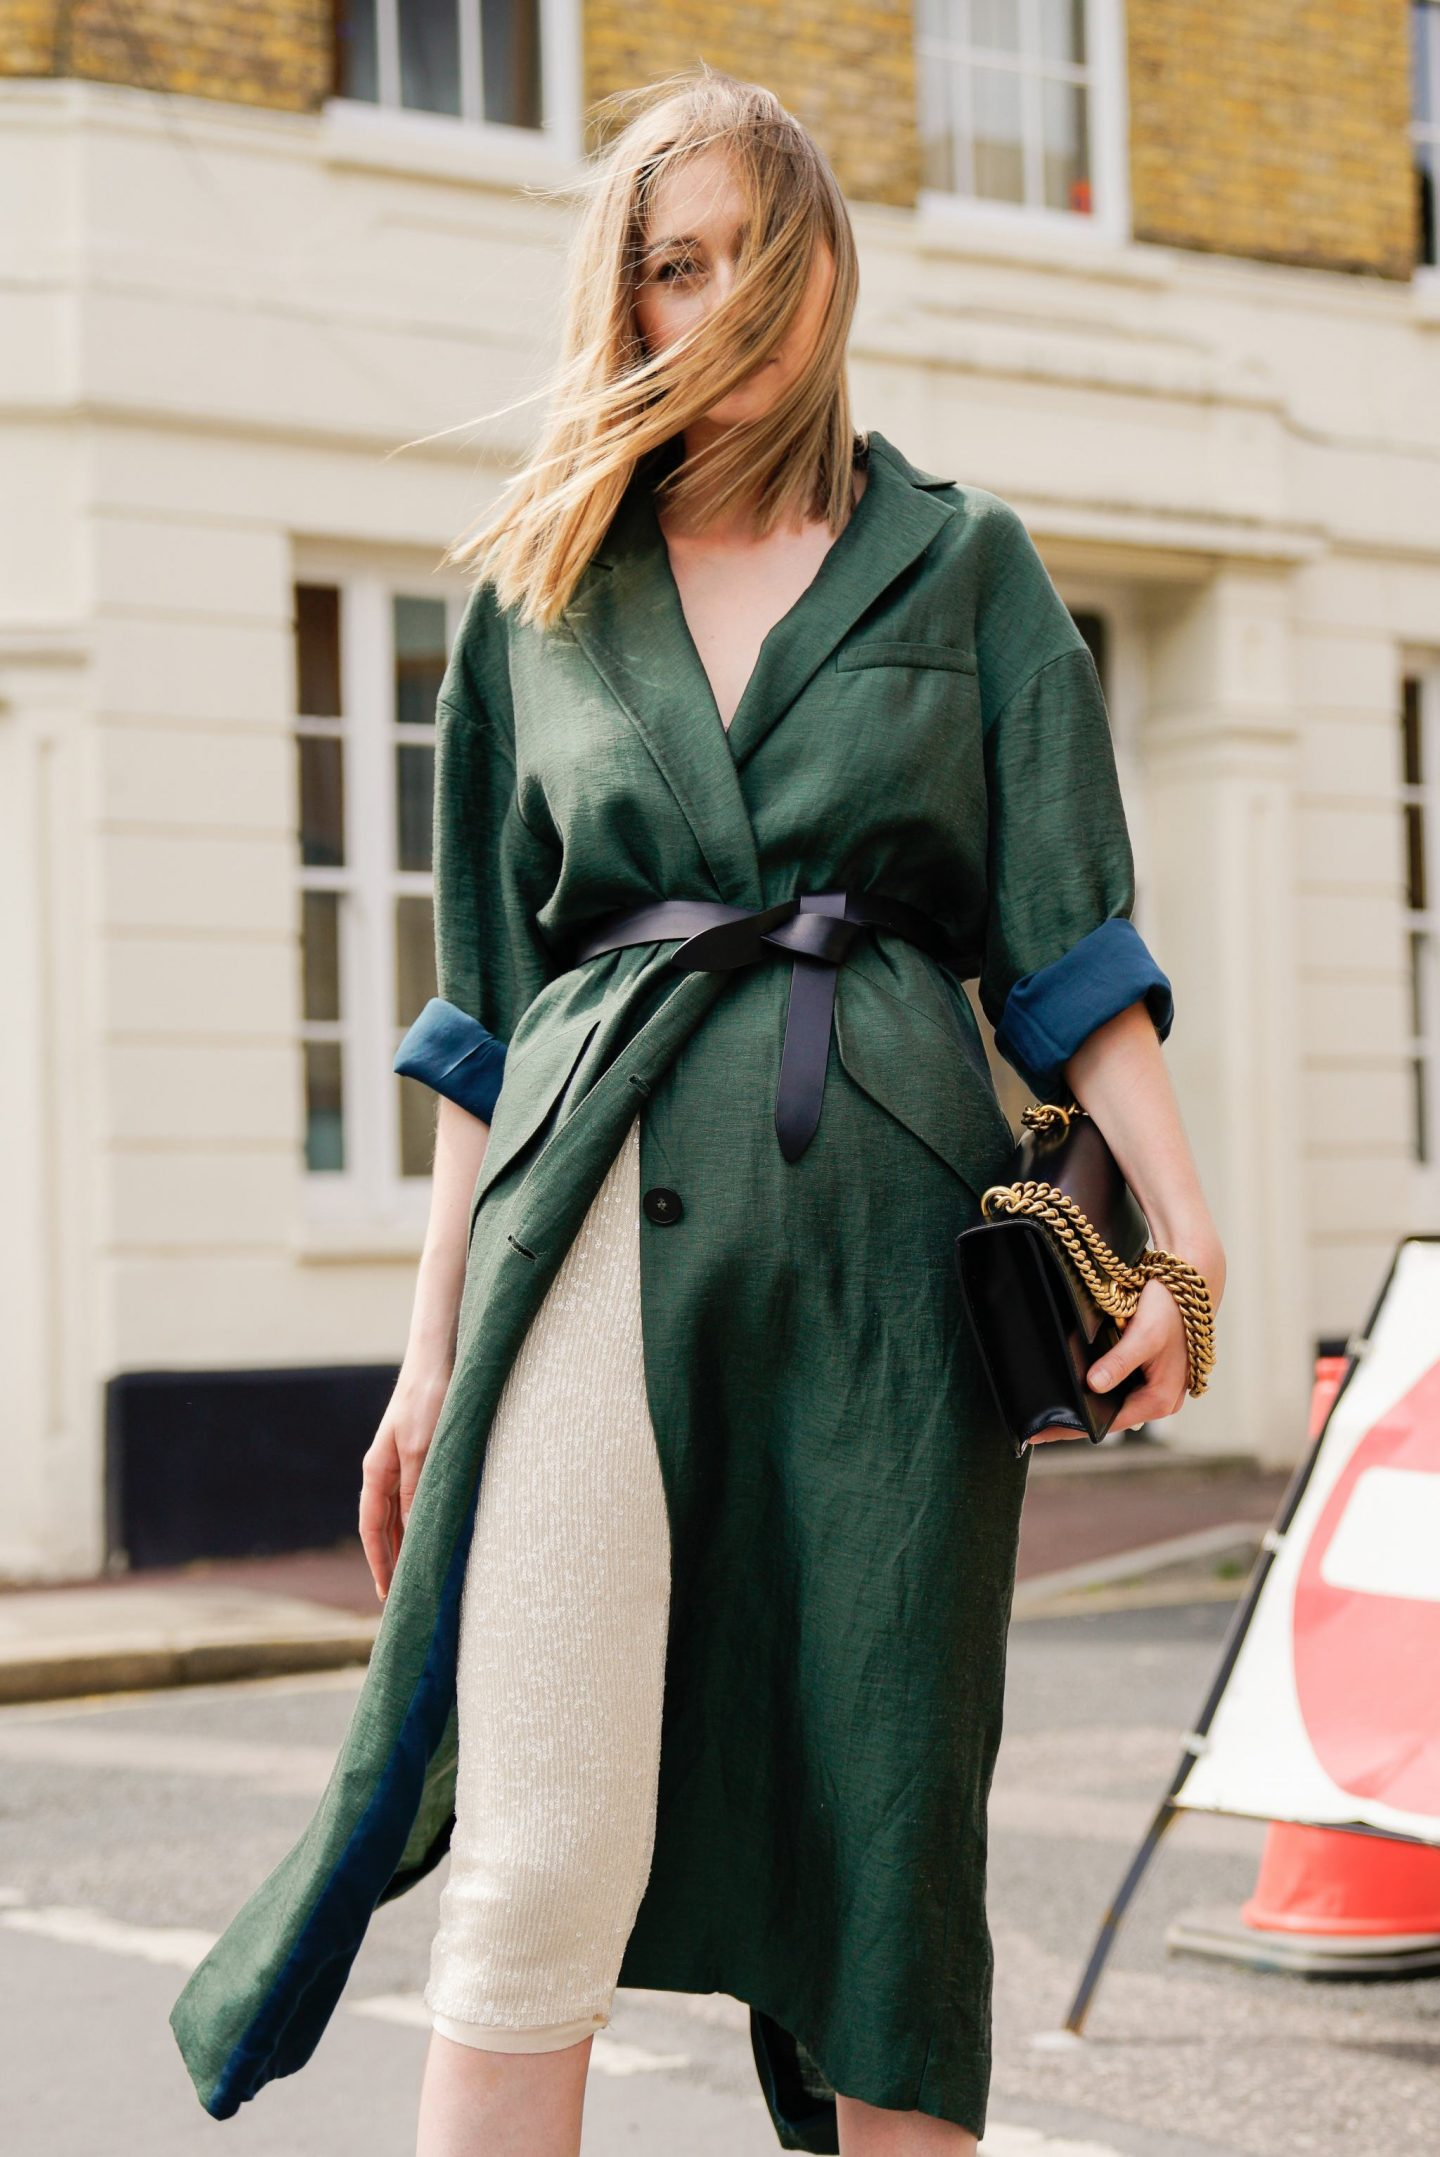 Lady in Zara green coat walking down the street.